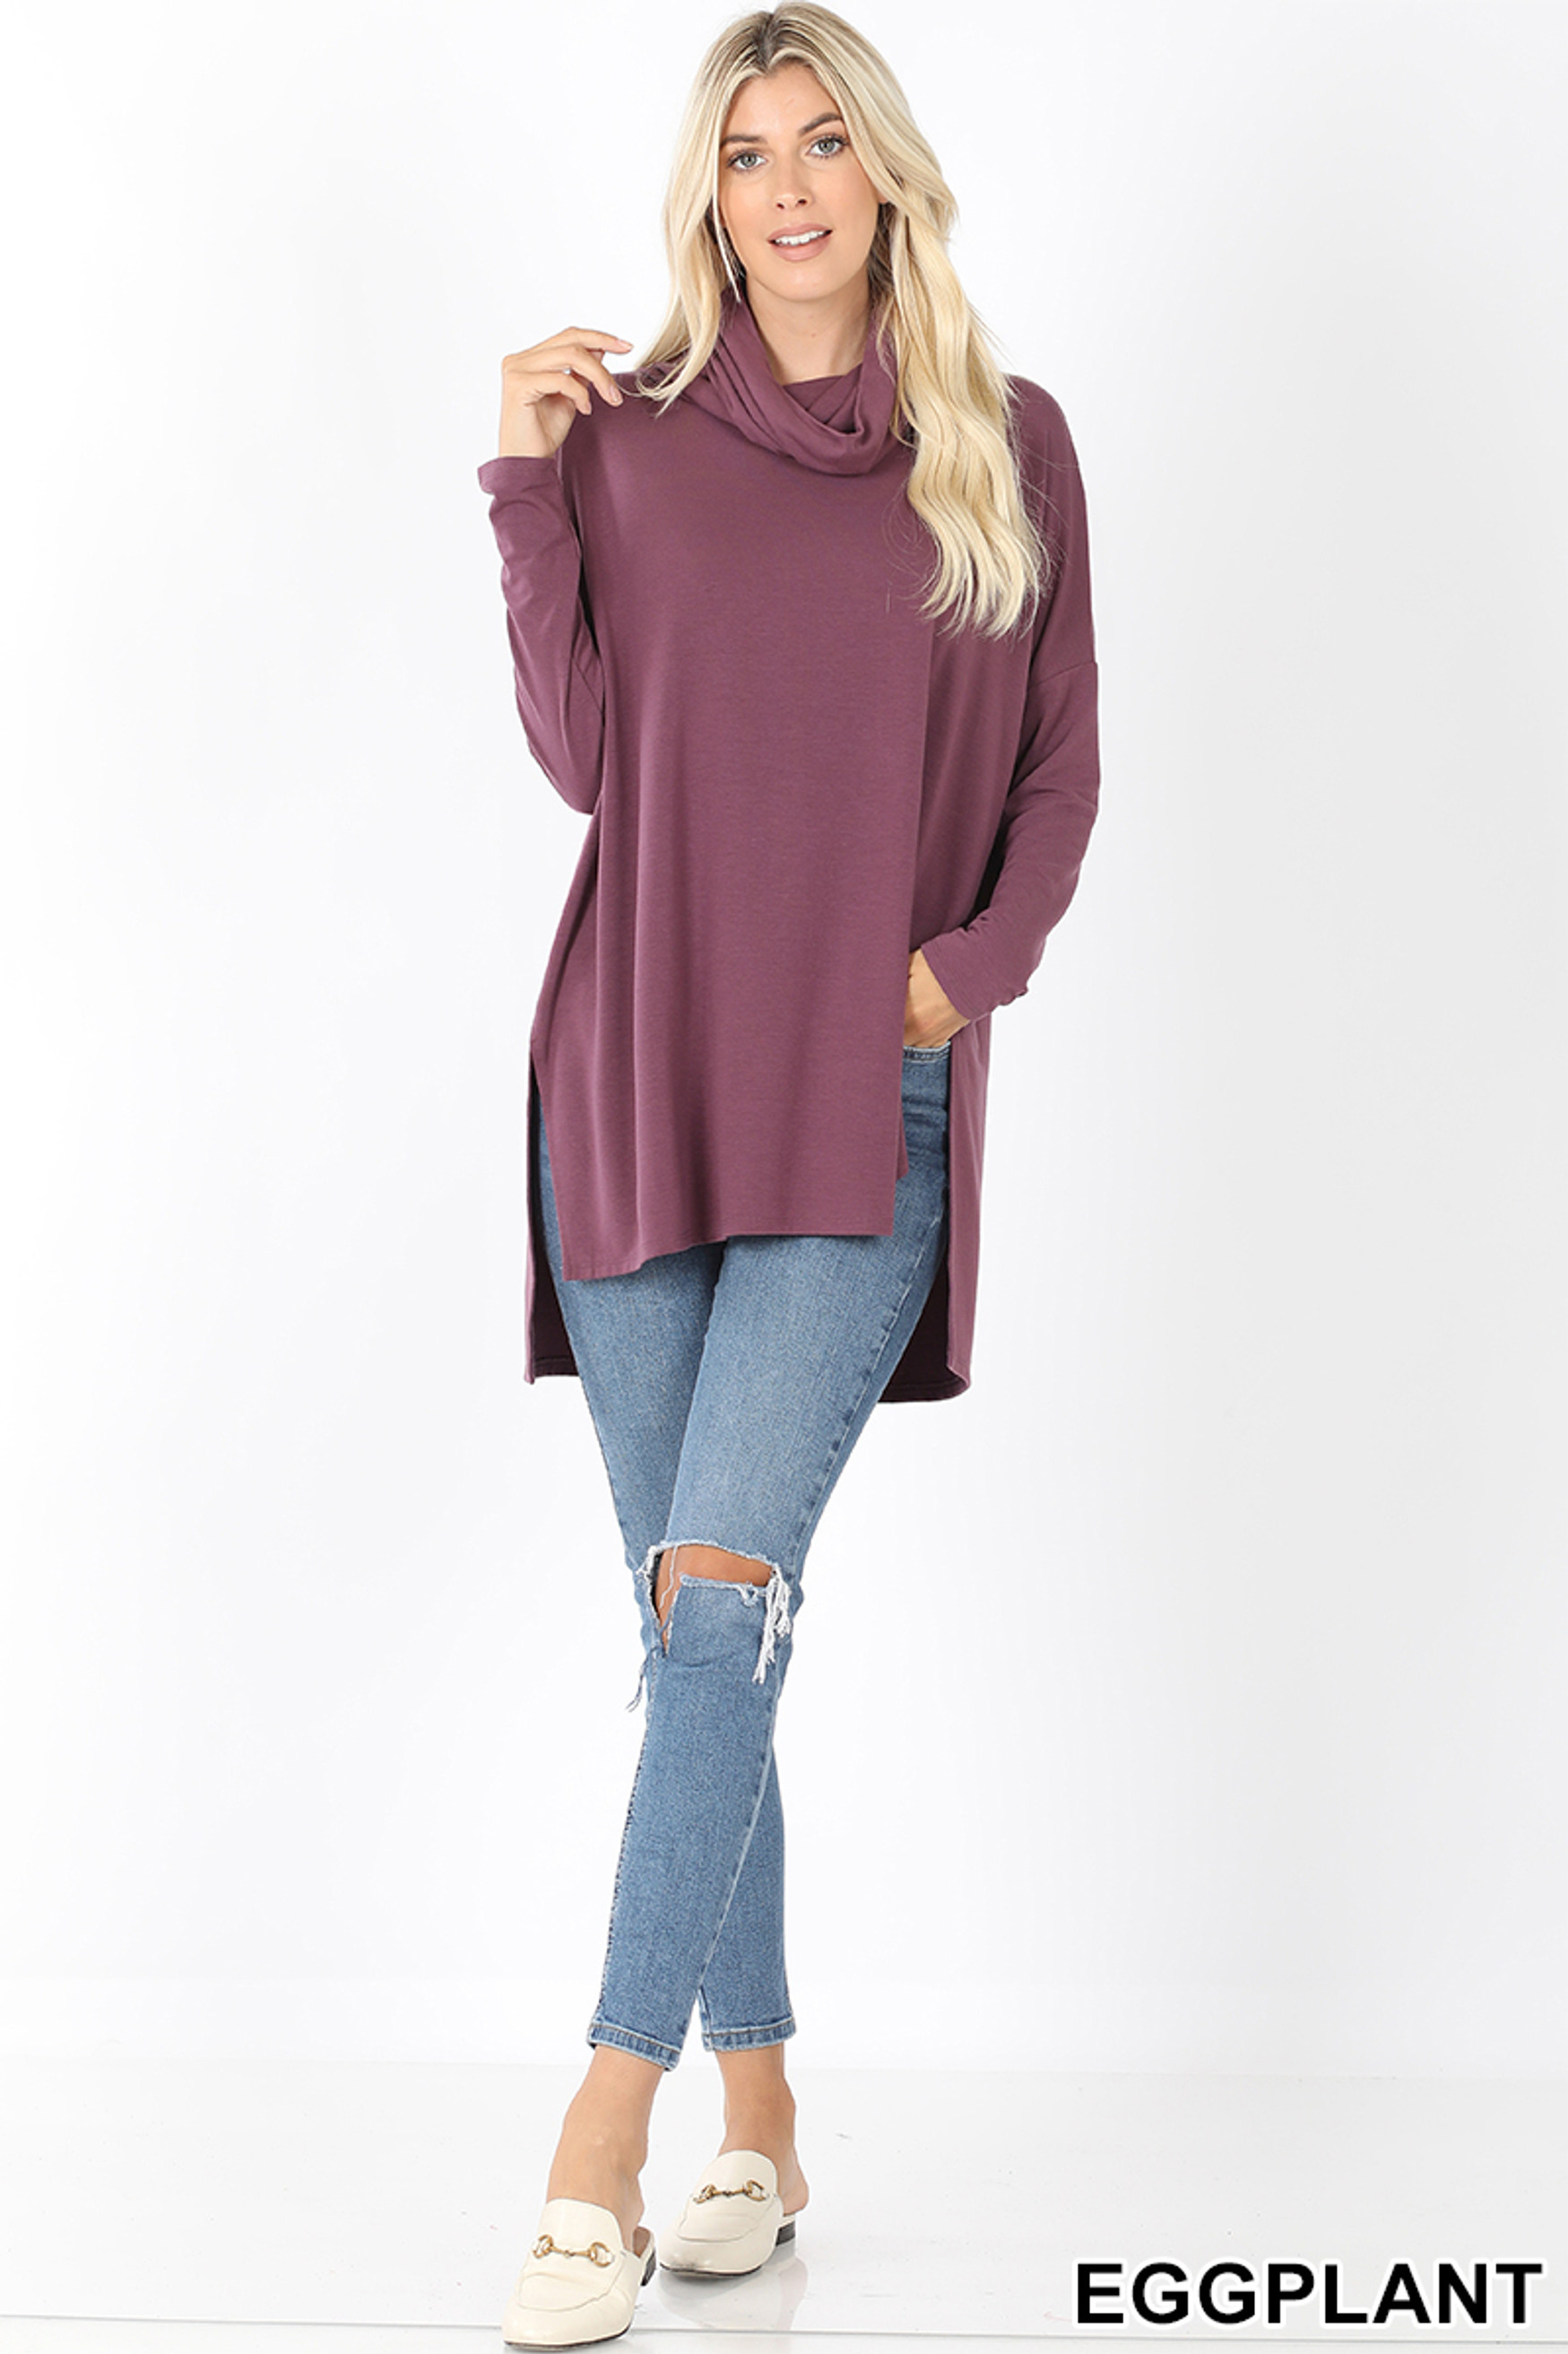 Full body front image of Eggplant Cowl Neck Hi-Low Long Sleeve Plus Size Top